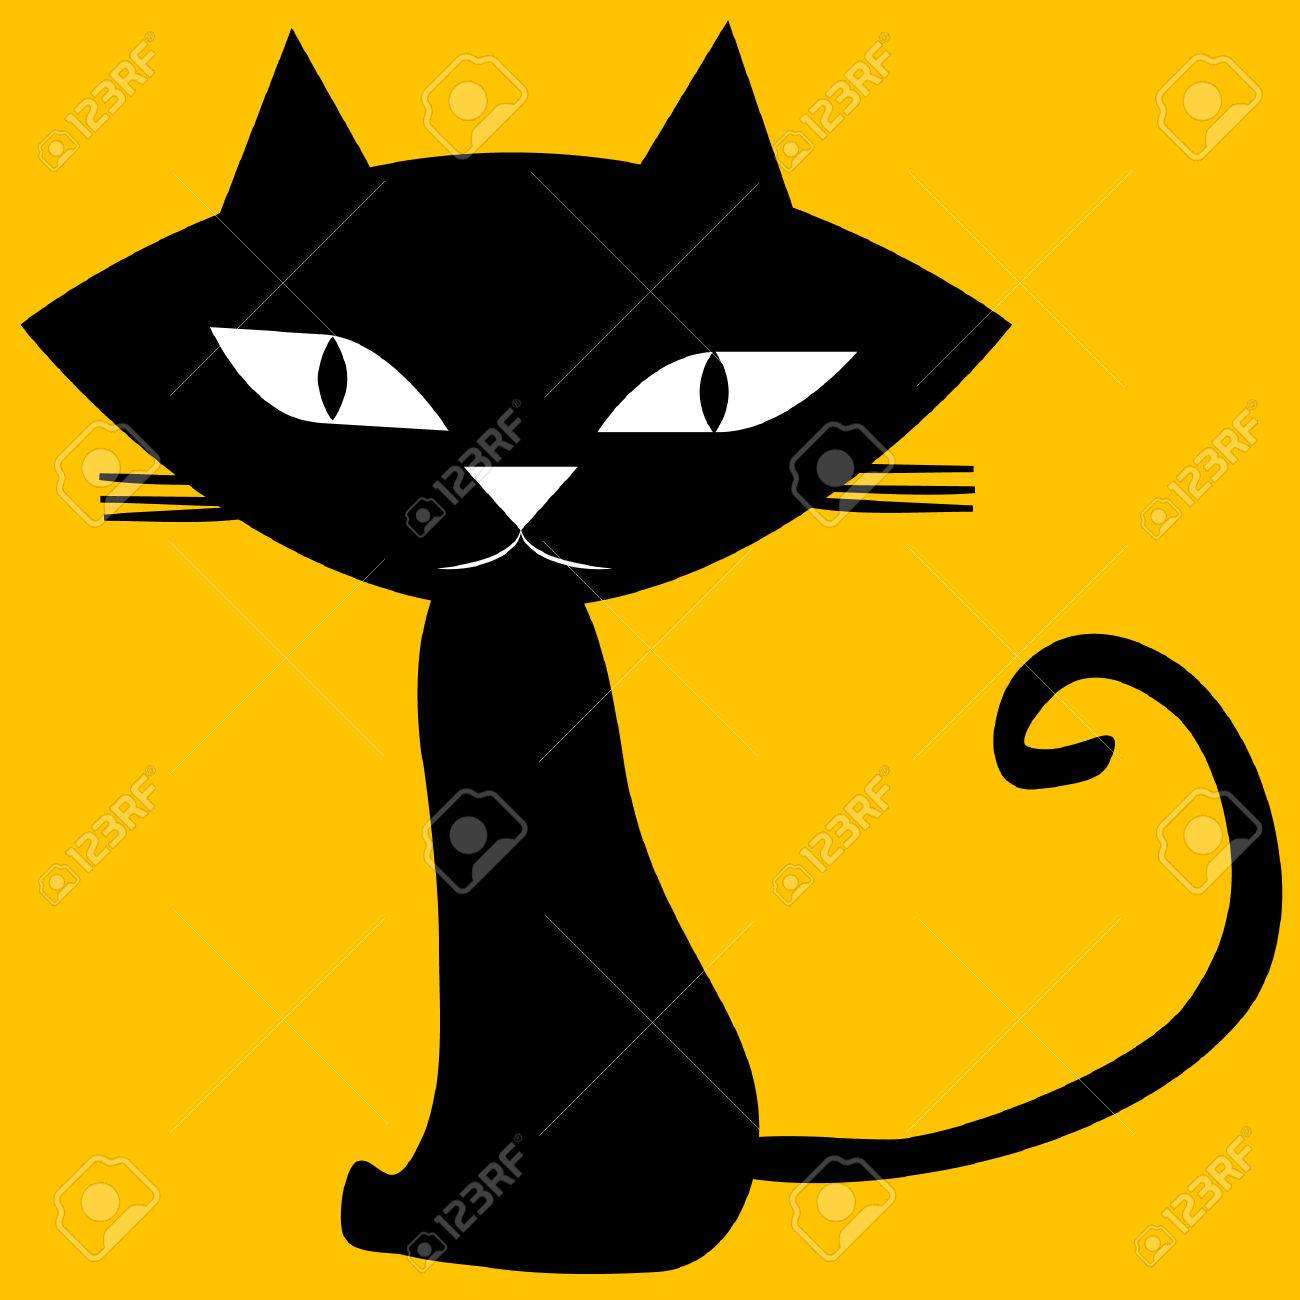 Black Cat Isolated On Yellow Background Royalty Free Cliparts Vectors And Stock Illustration Image 42803999